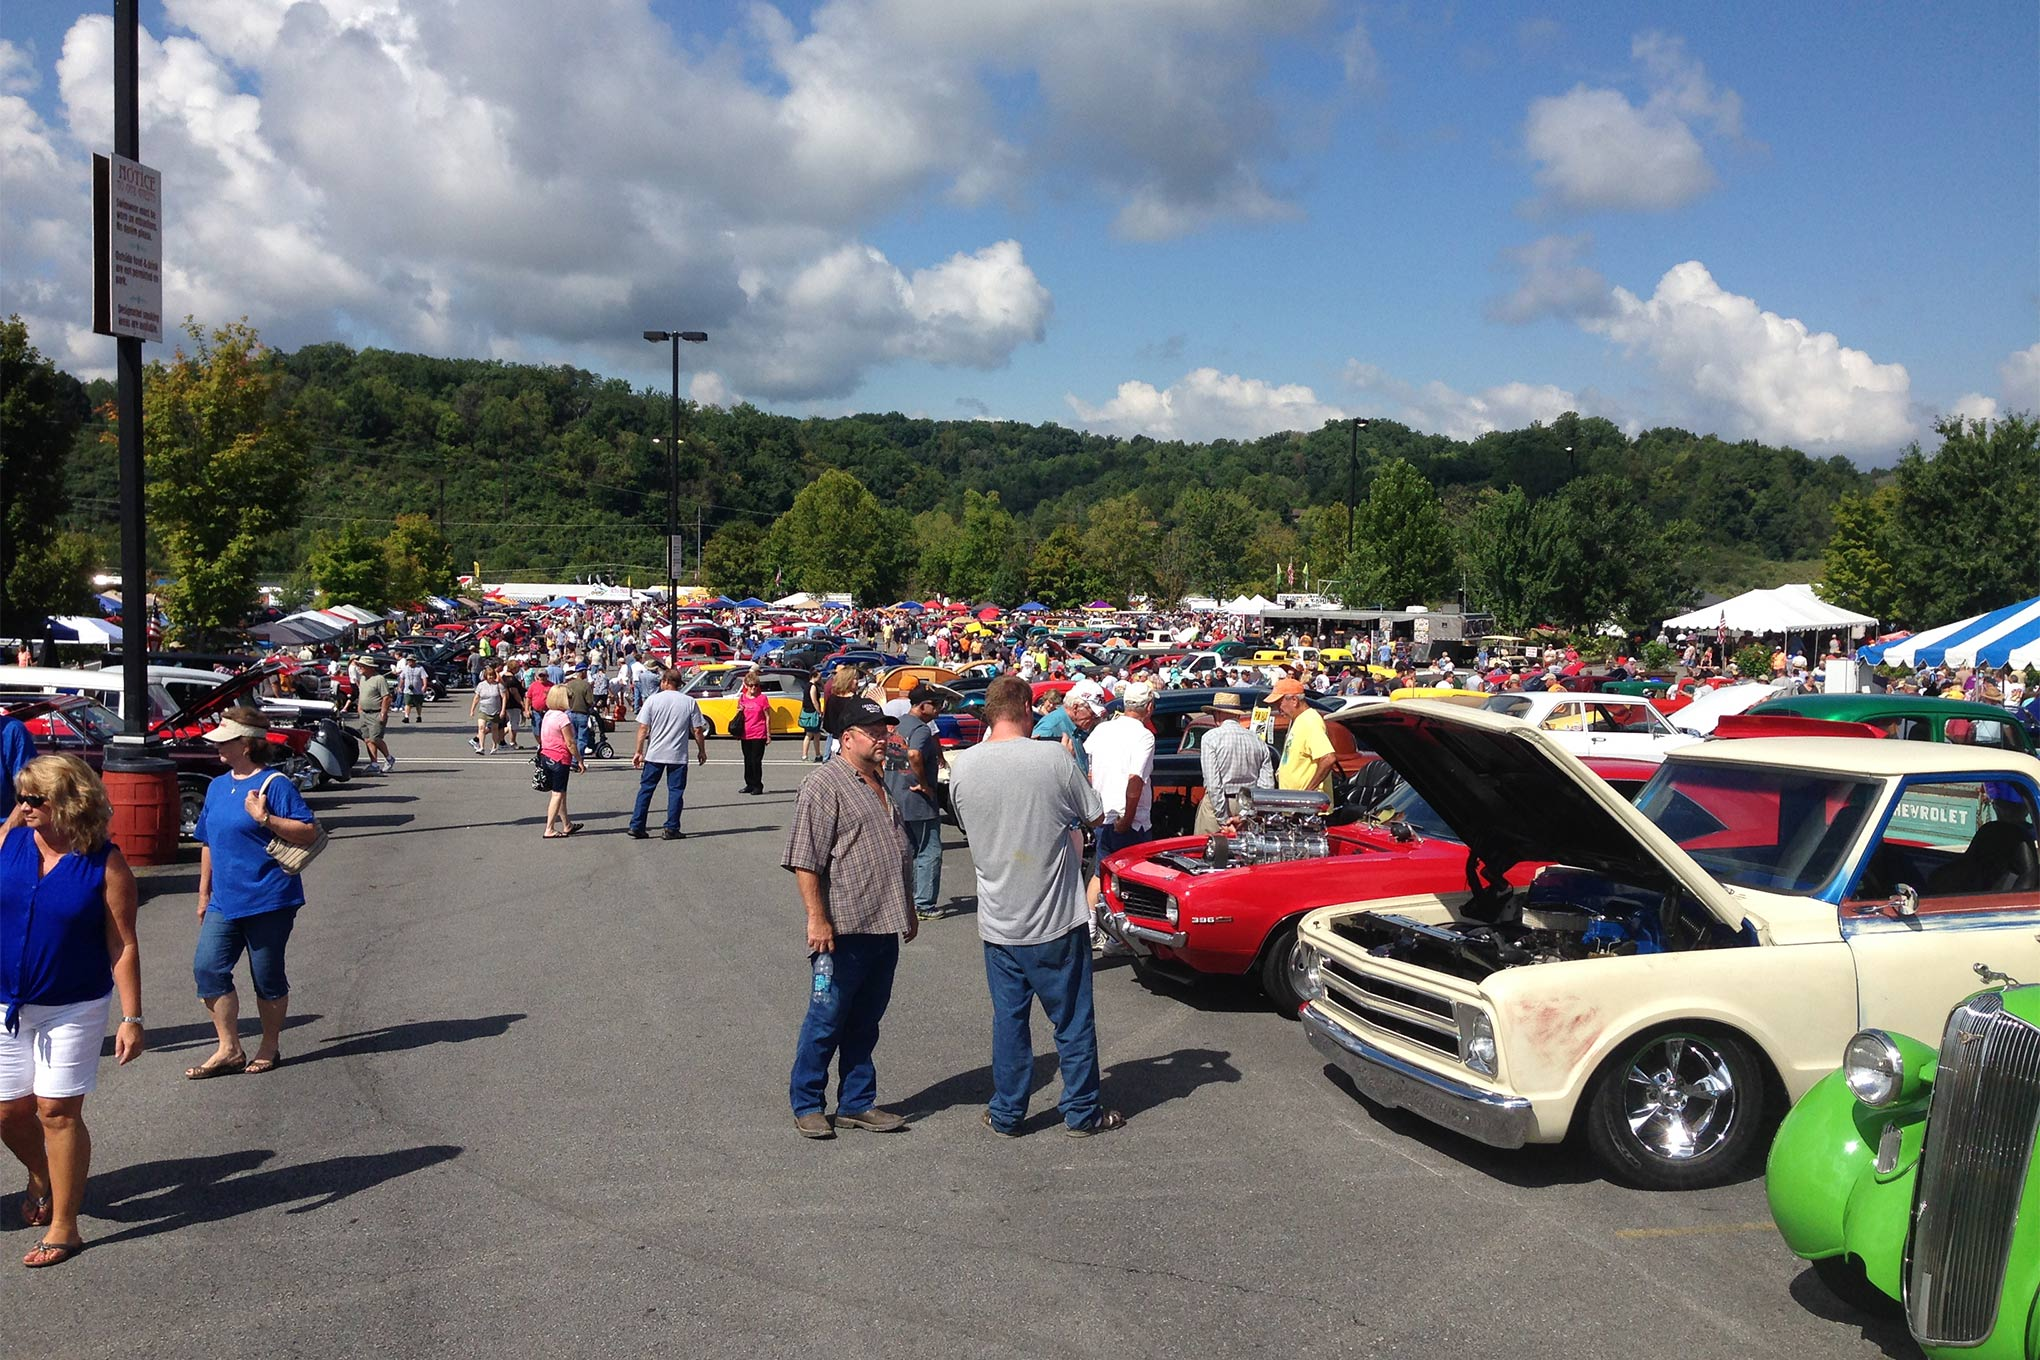 The 33rd edition of the Shades of the Past Hot Rod Round Up was a big hit with everyone in attendance. This show has grown tremendously since their move to Dollywood Splash Country in Pigeon Forge.